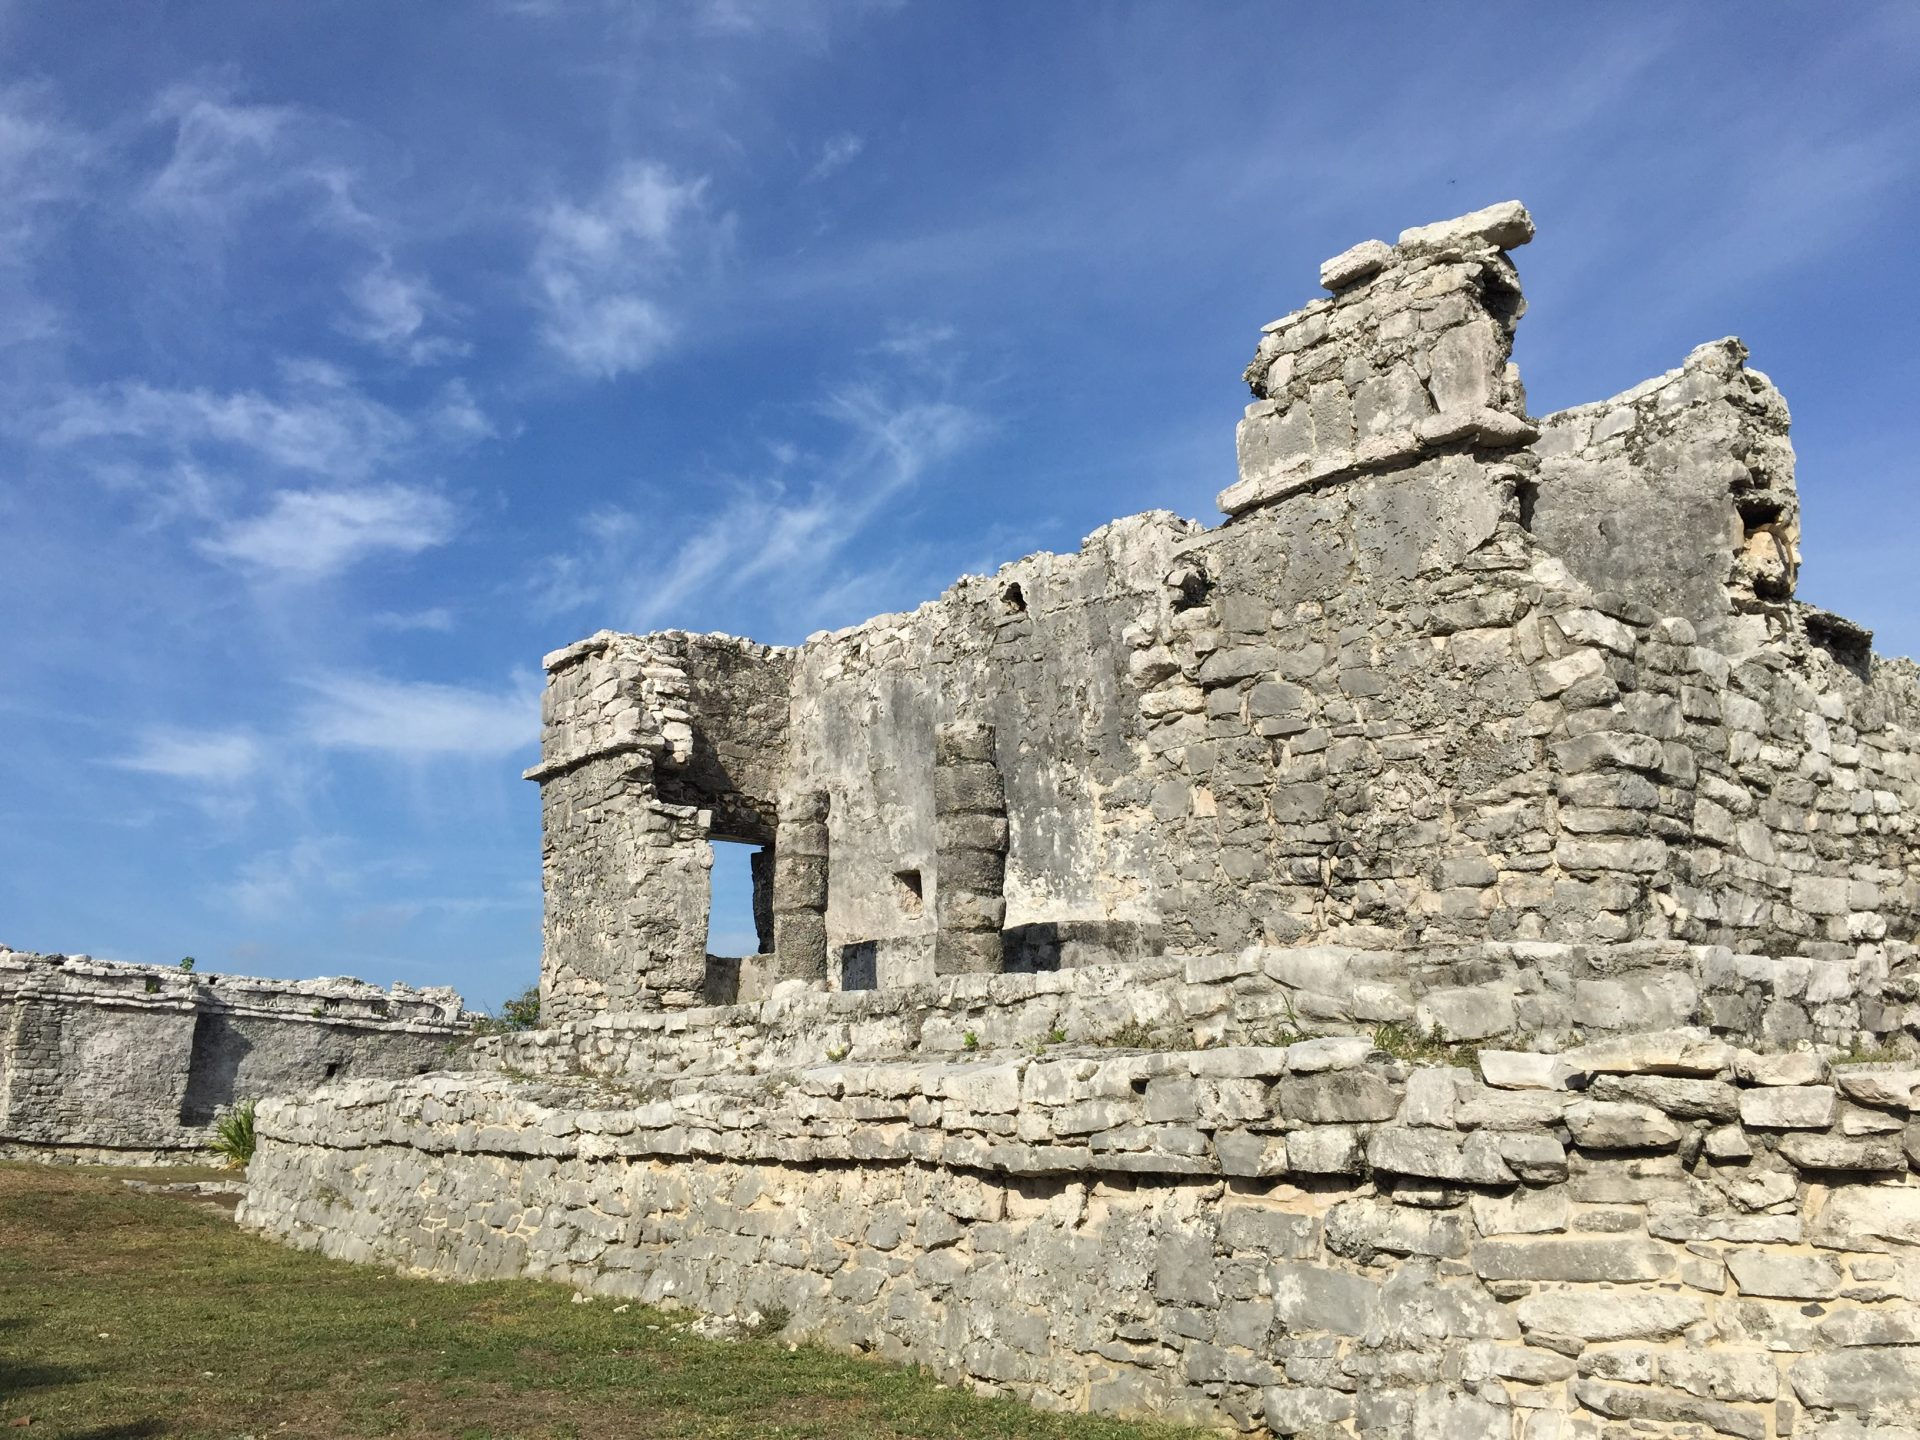 ruins tulum mexico - Travel Contests: August 12th, 2020 - Cancun, Maui, San Diego, & more